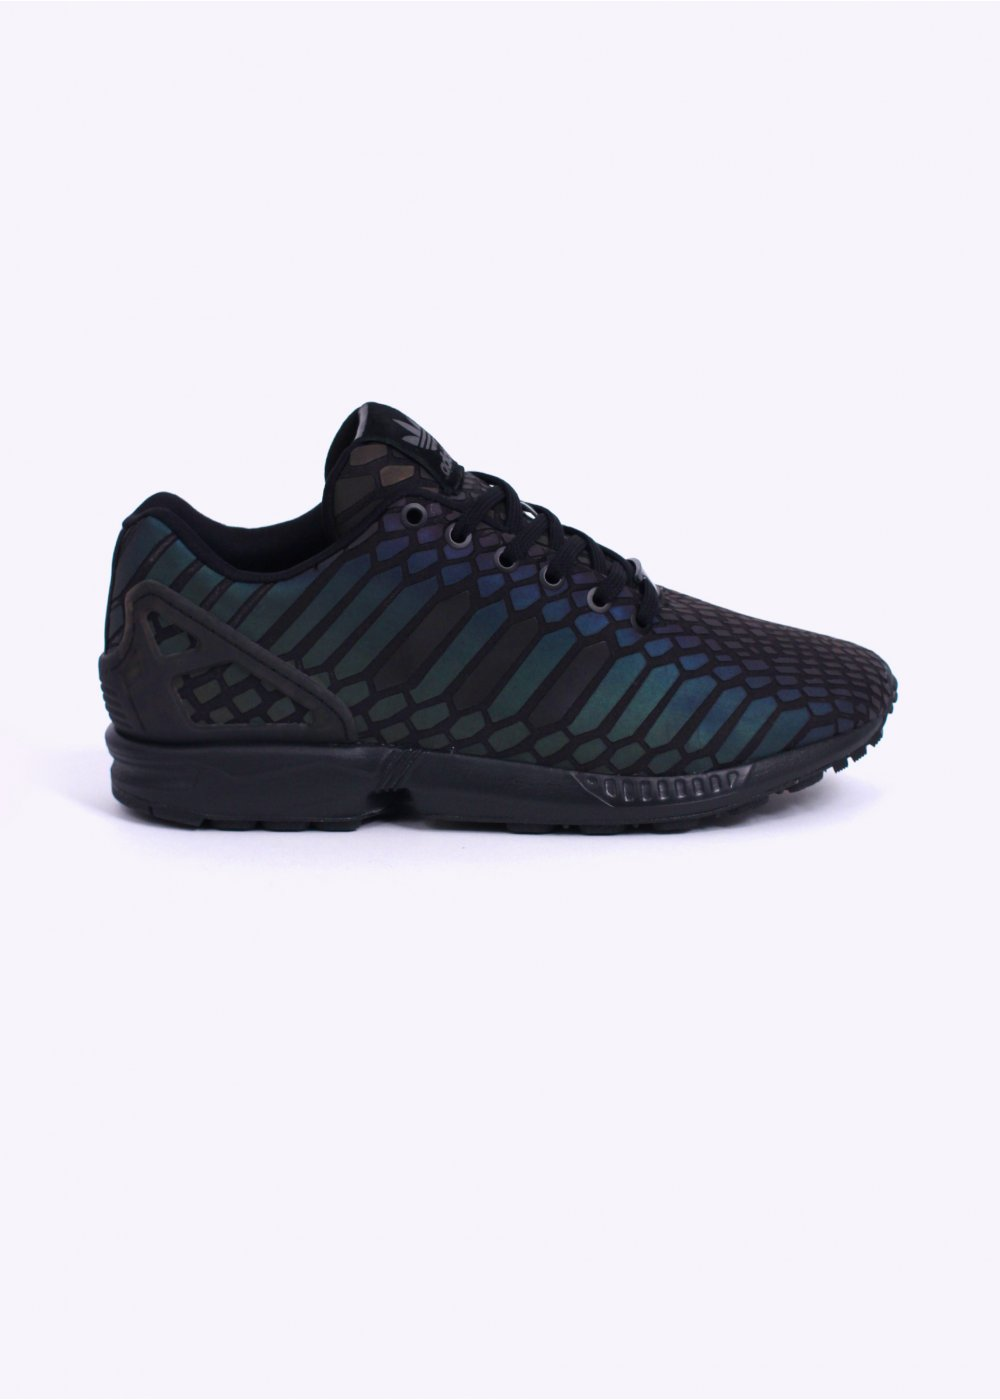 quality design e13ce 0e4f4 adidas Originals Footwear ZX Flux Xeno - Black / Reflective